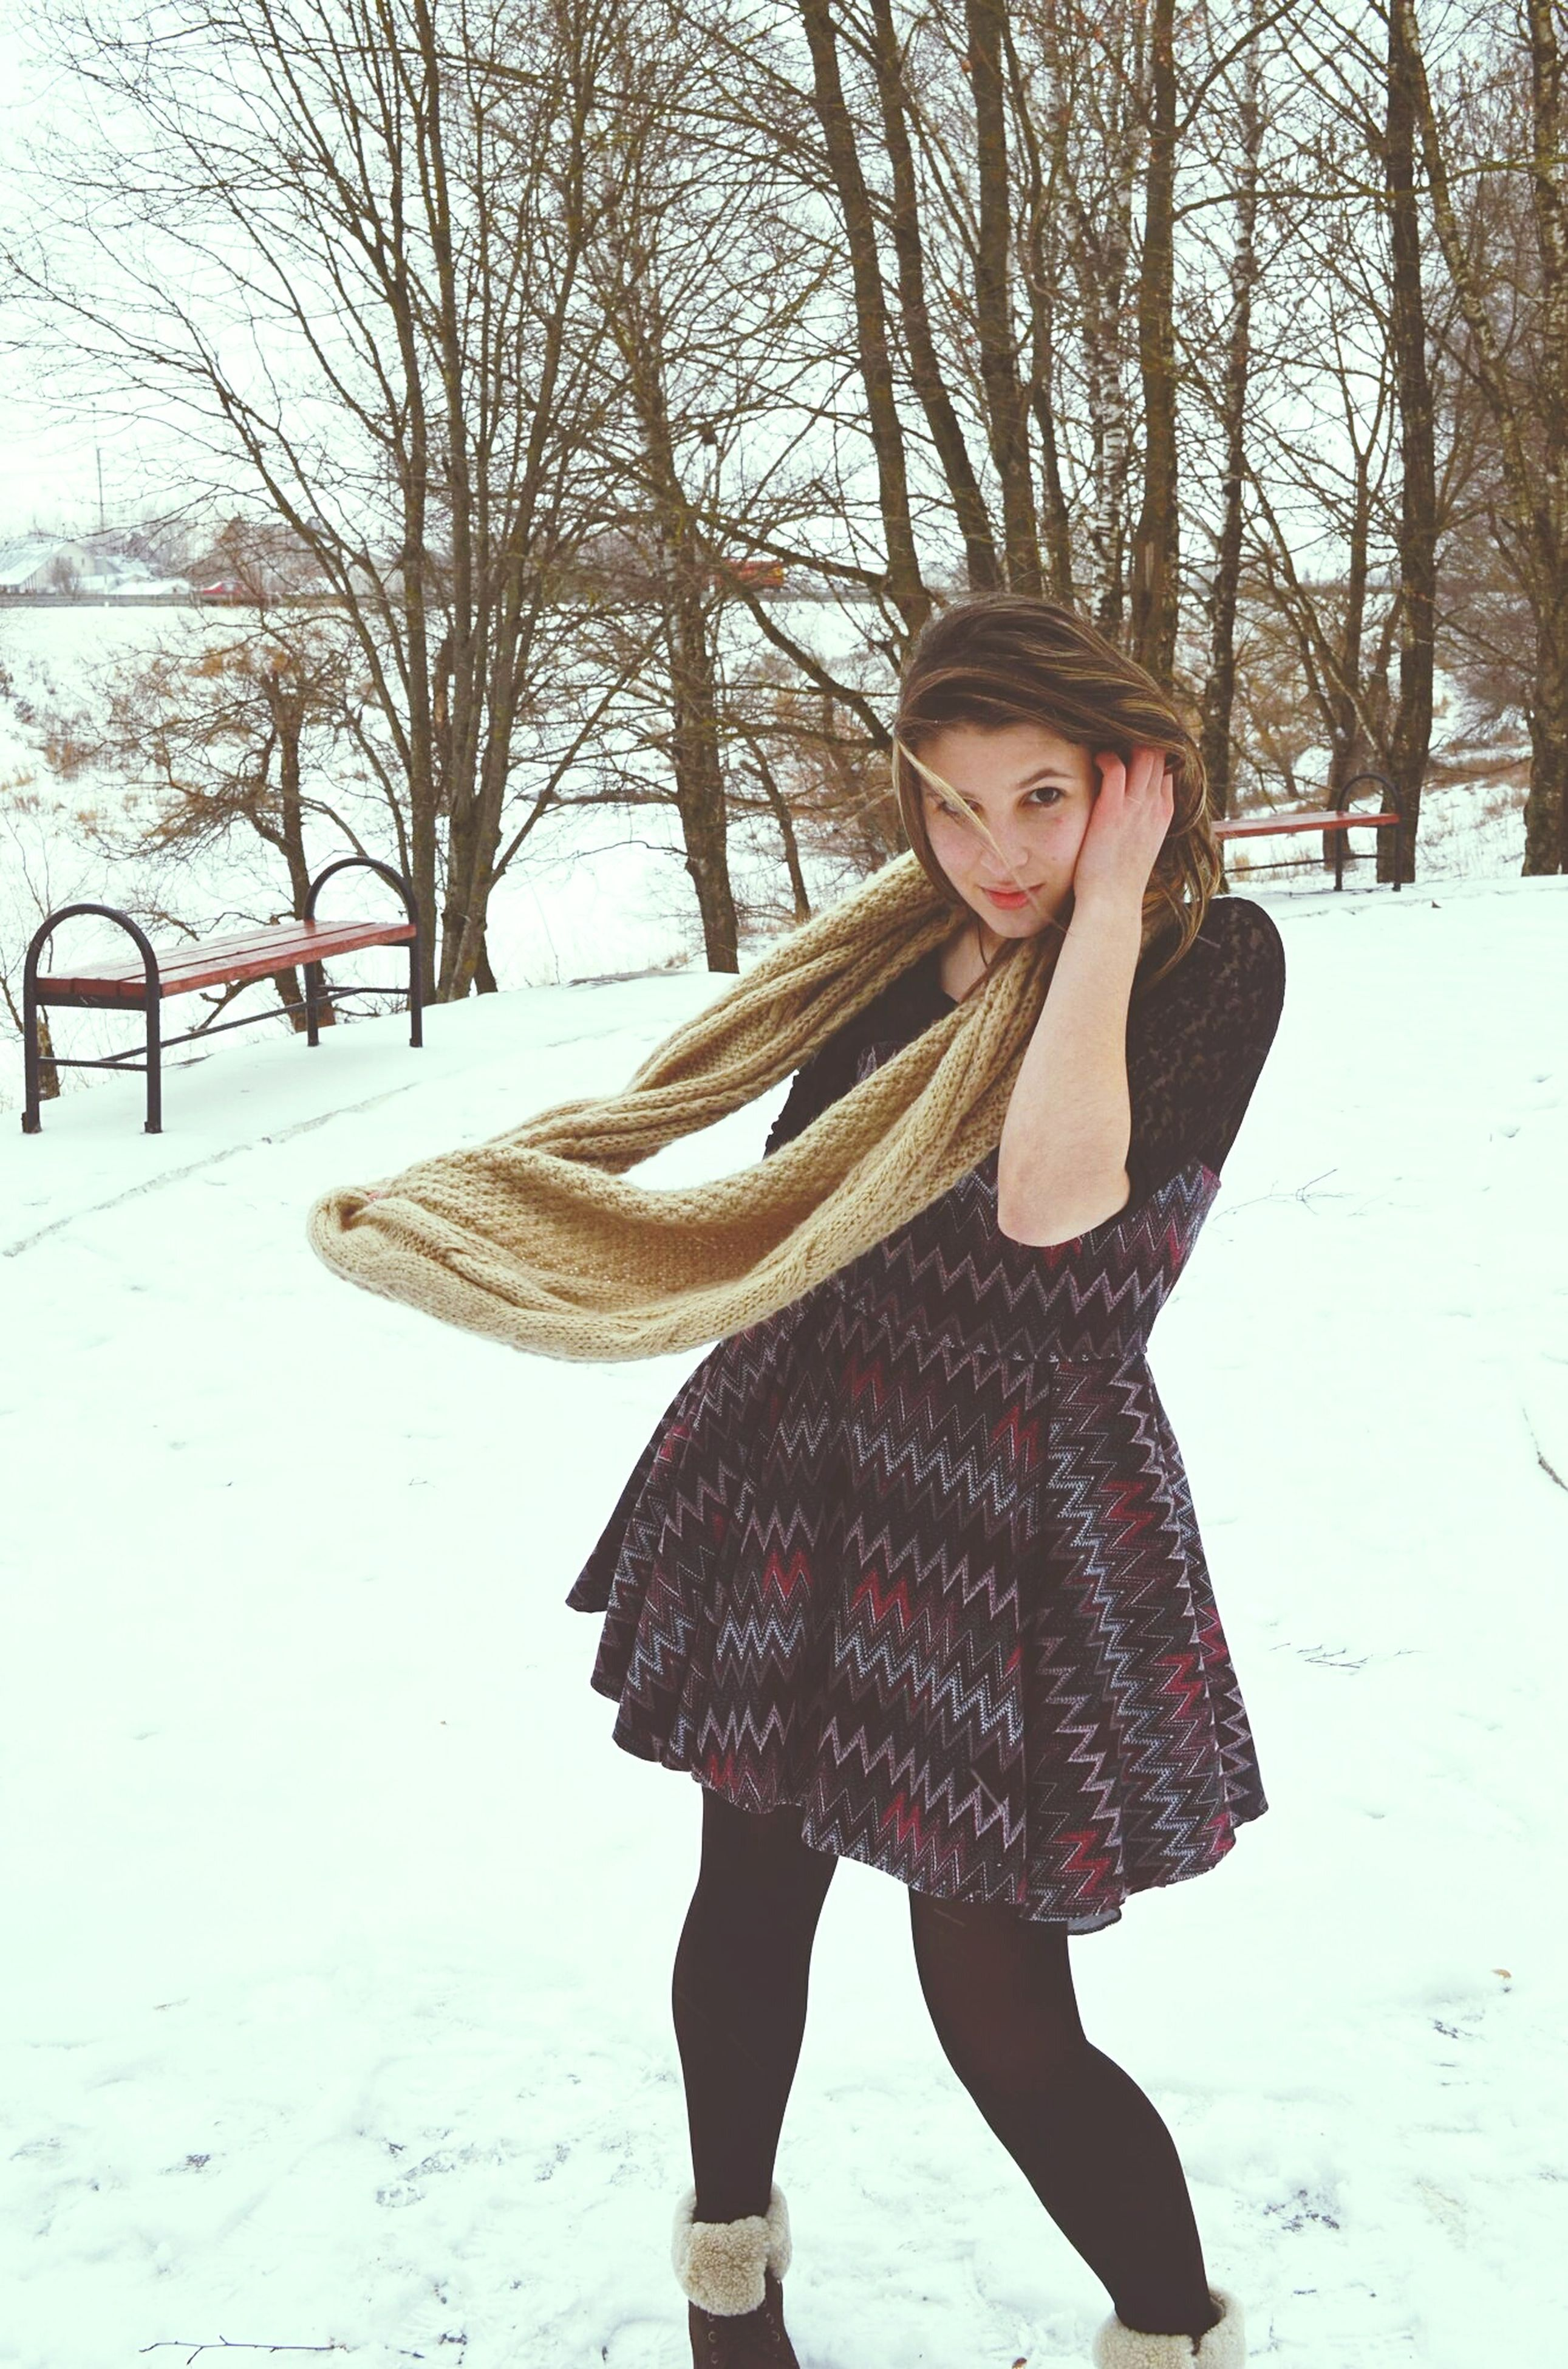 winter, lifestyles, cold temperature, young adult, snow, young women, standing, leisure activity, season, casual clothing, person, warm clothing, front view, looking at camera, full length, three quarter length, long hair, portrait